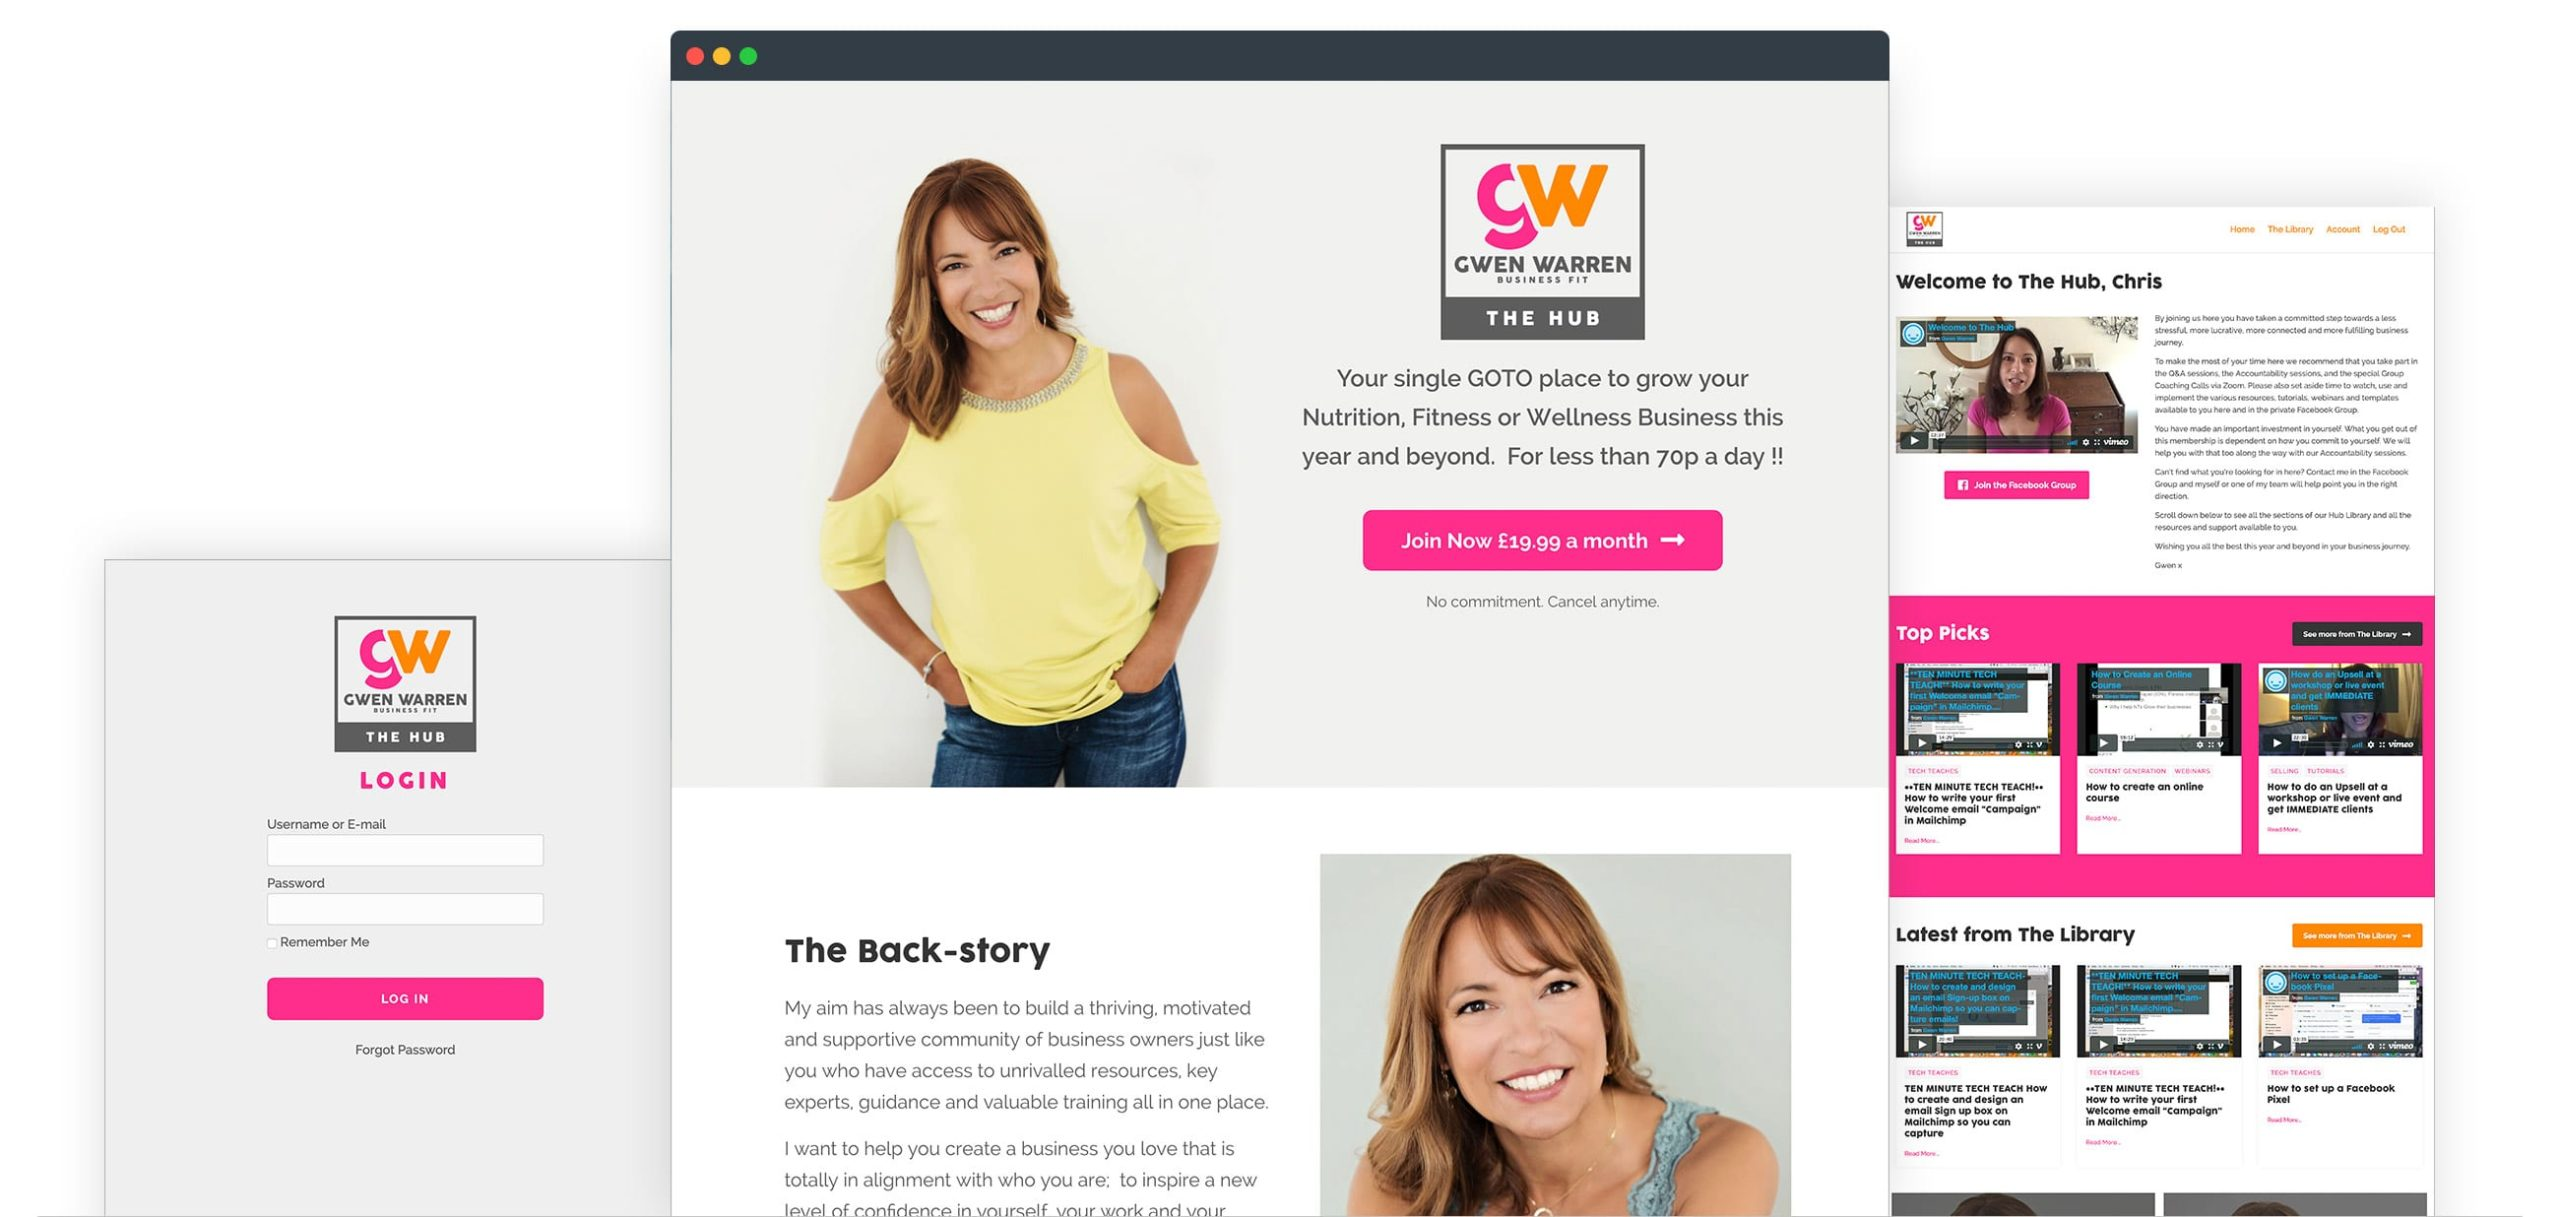 Gwen Warren Website and Membership site Screenshots